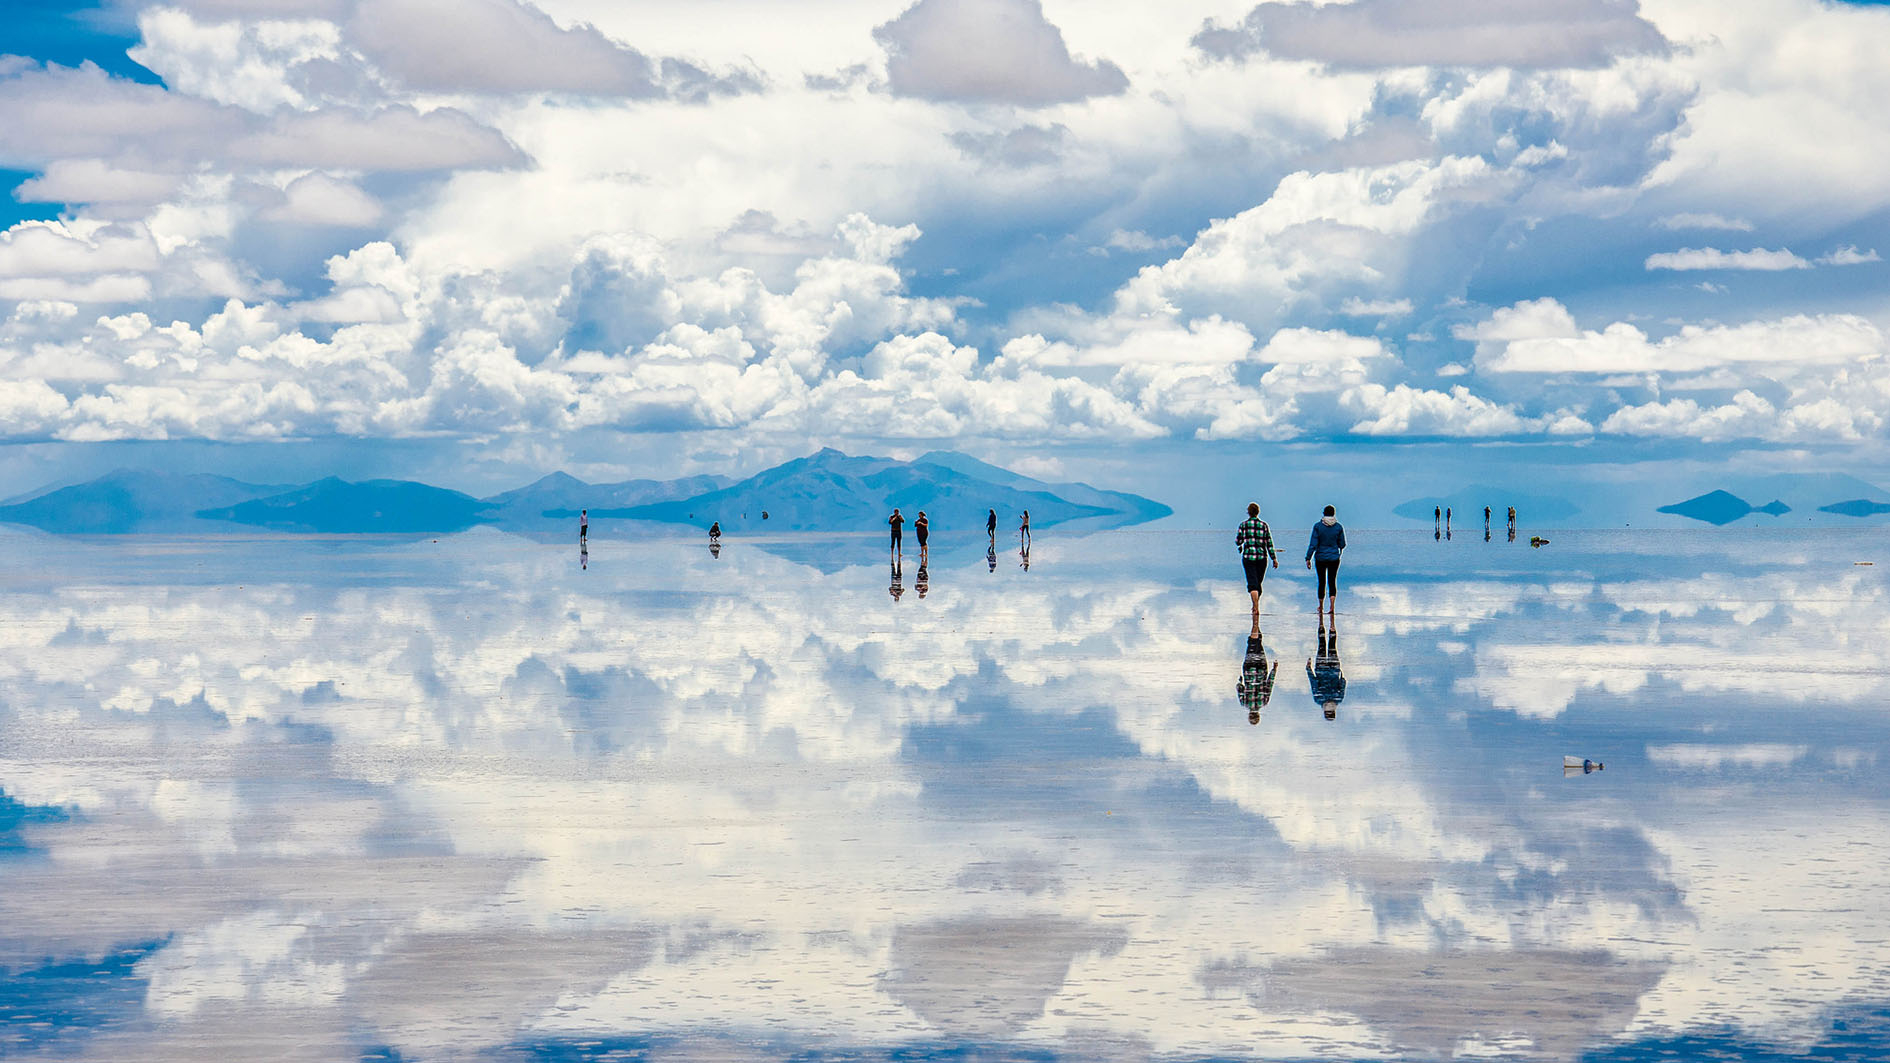 Mirror of the Sky: Bolivia's Uyuni Salt Flats - CGTN